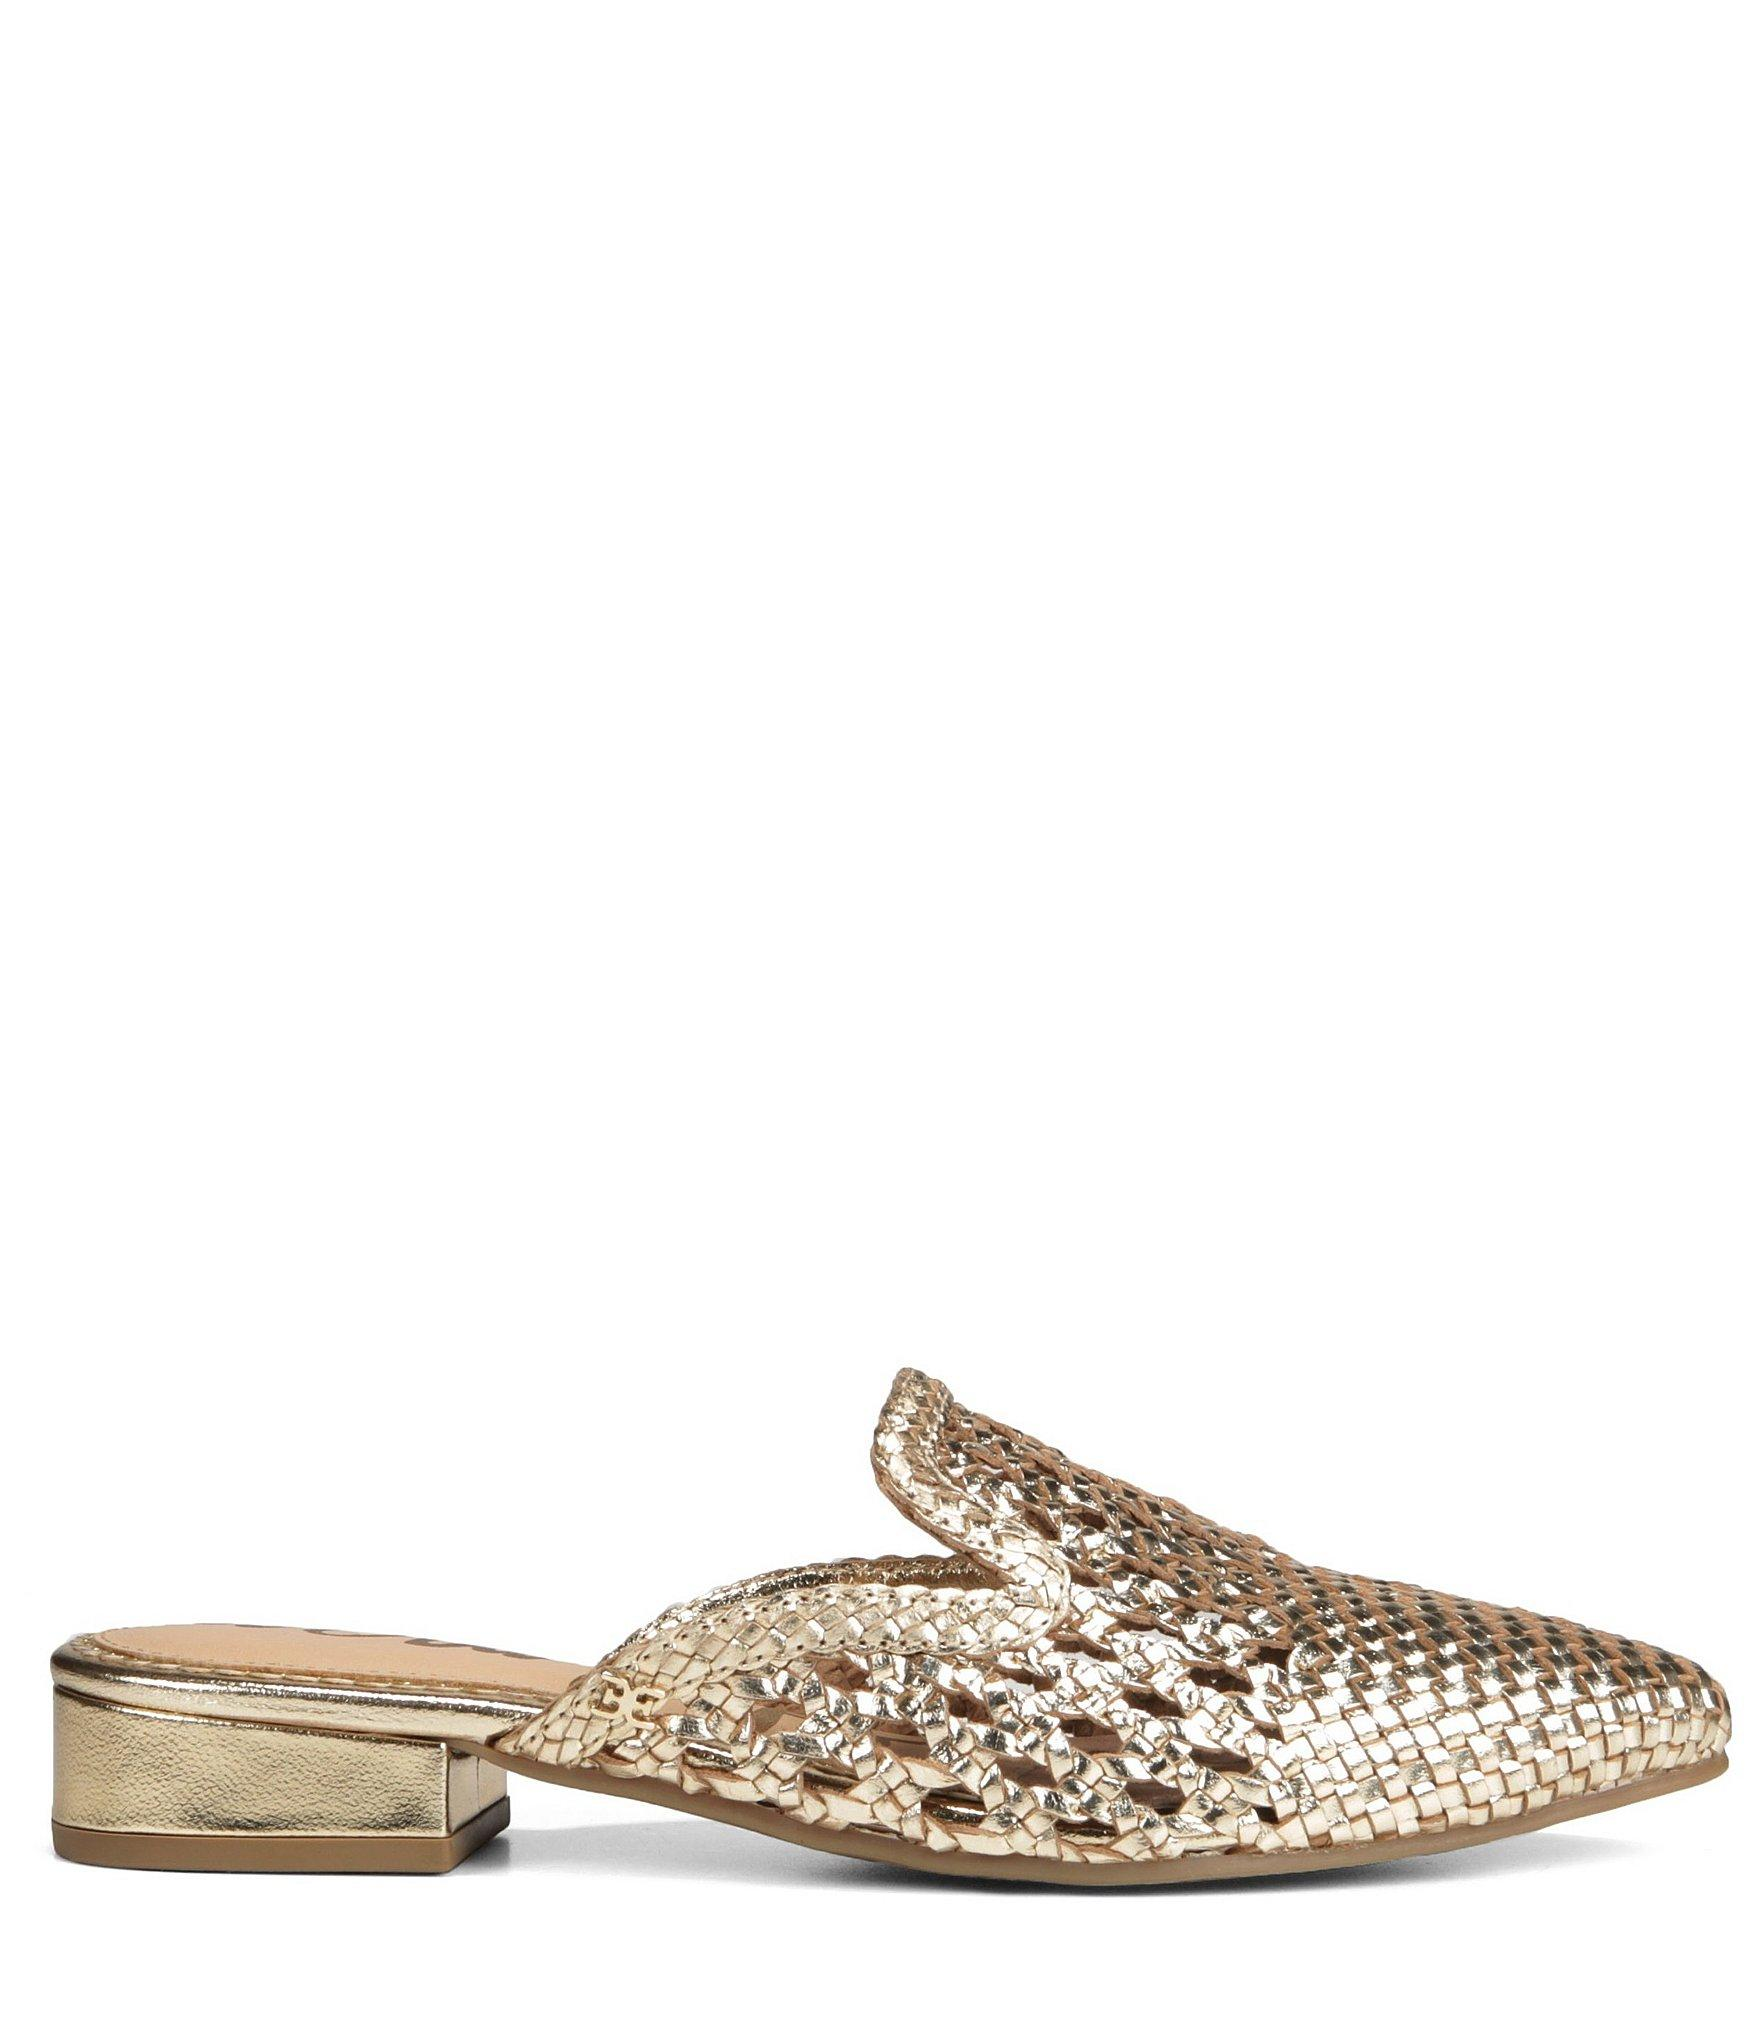 c1fee4669 Sam Edelman - Metallic Women s Clara Woven Leather Mules - Lyst. View  fullscreen